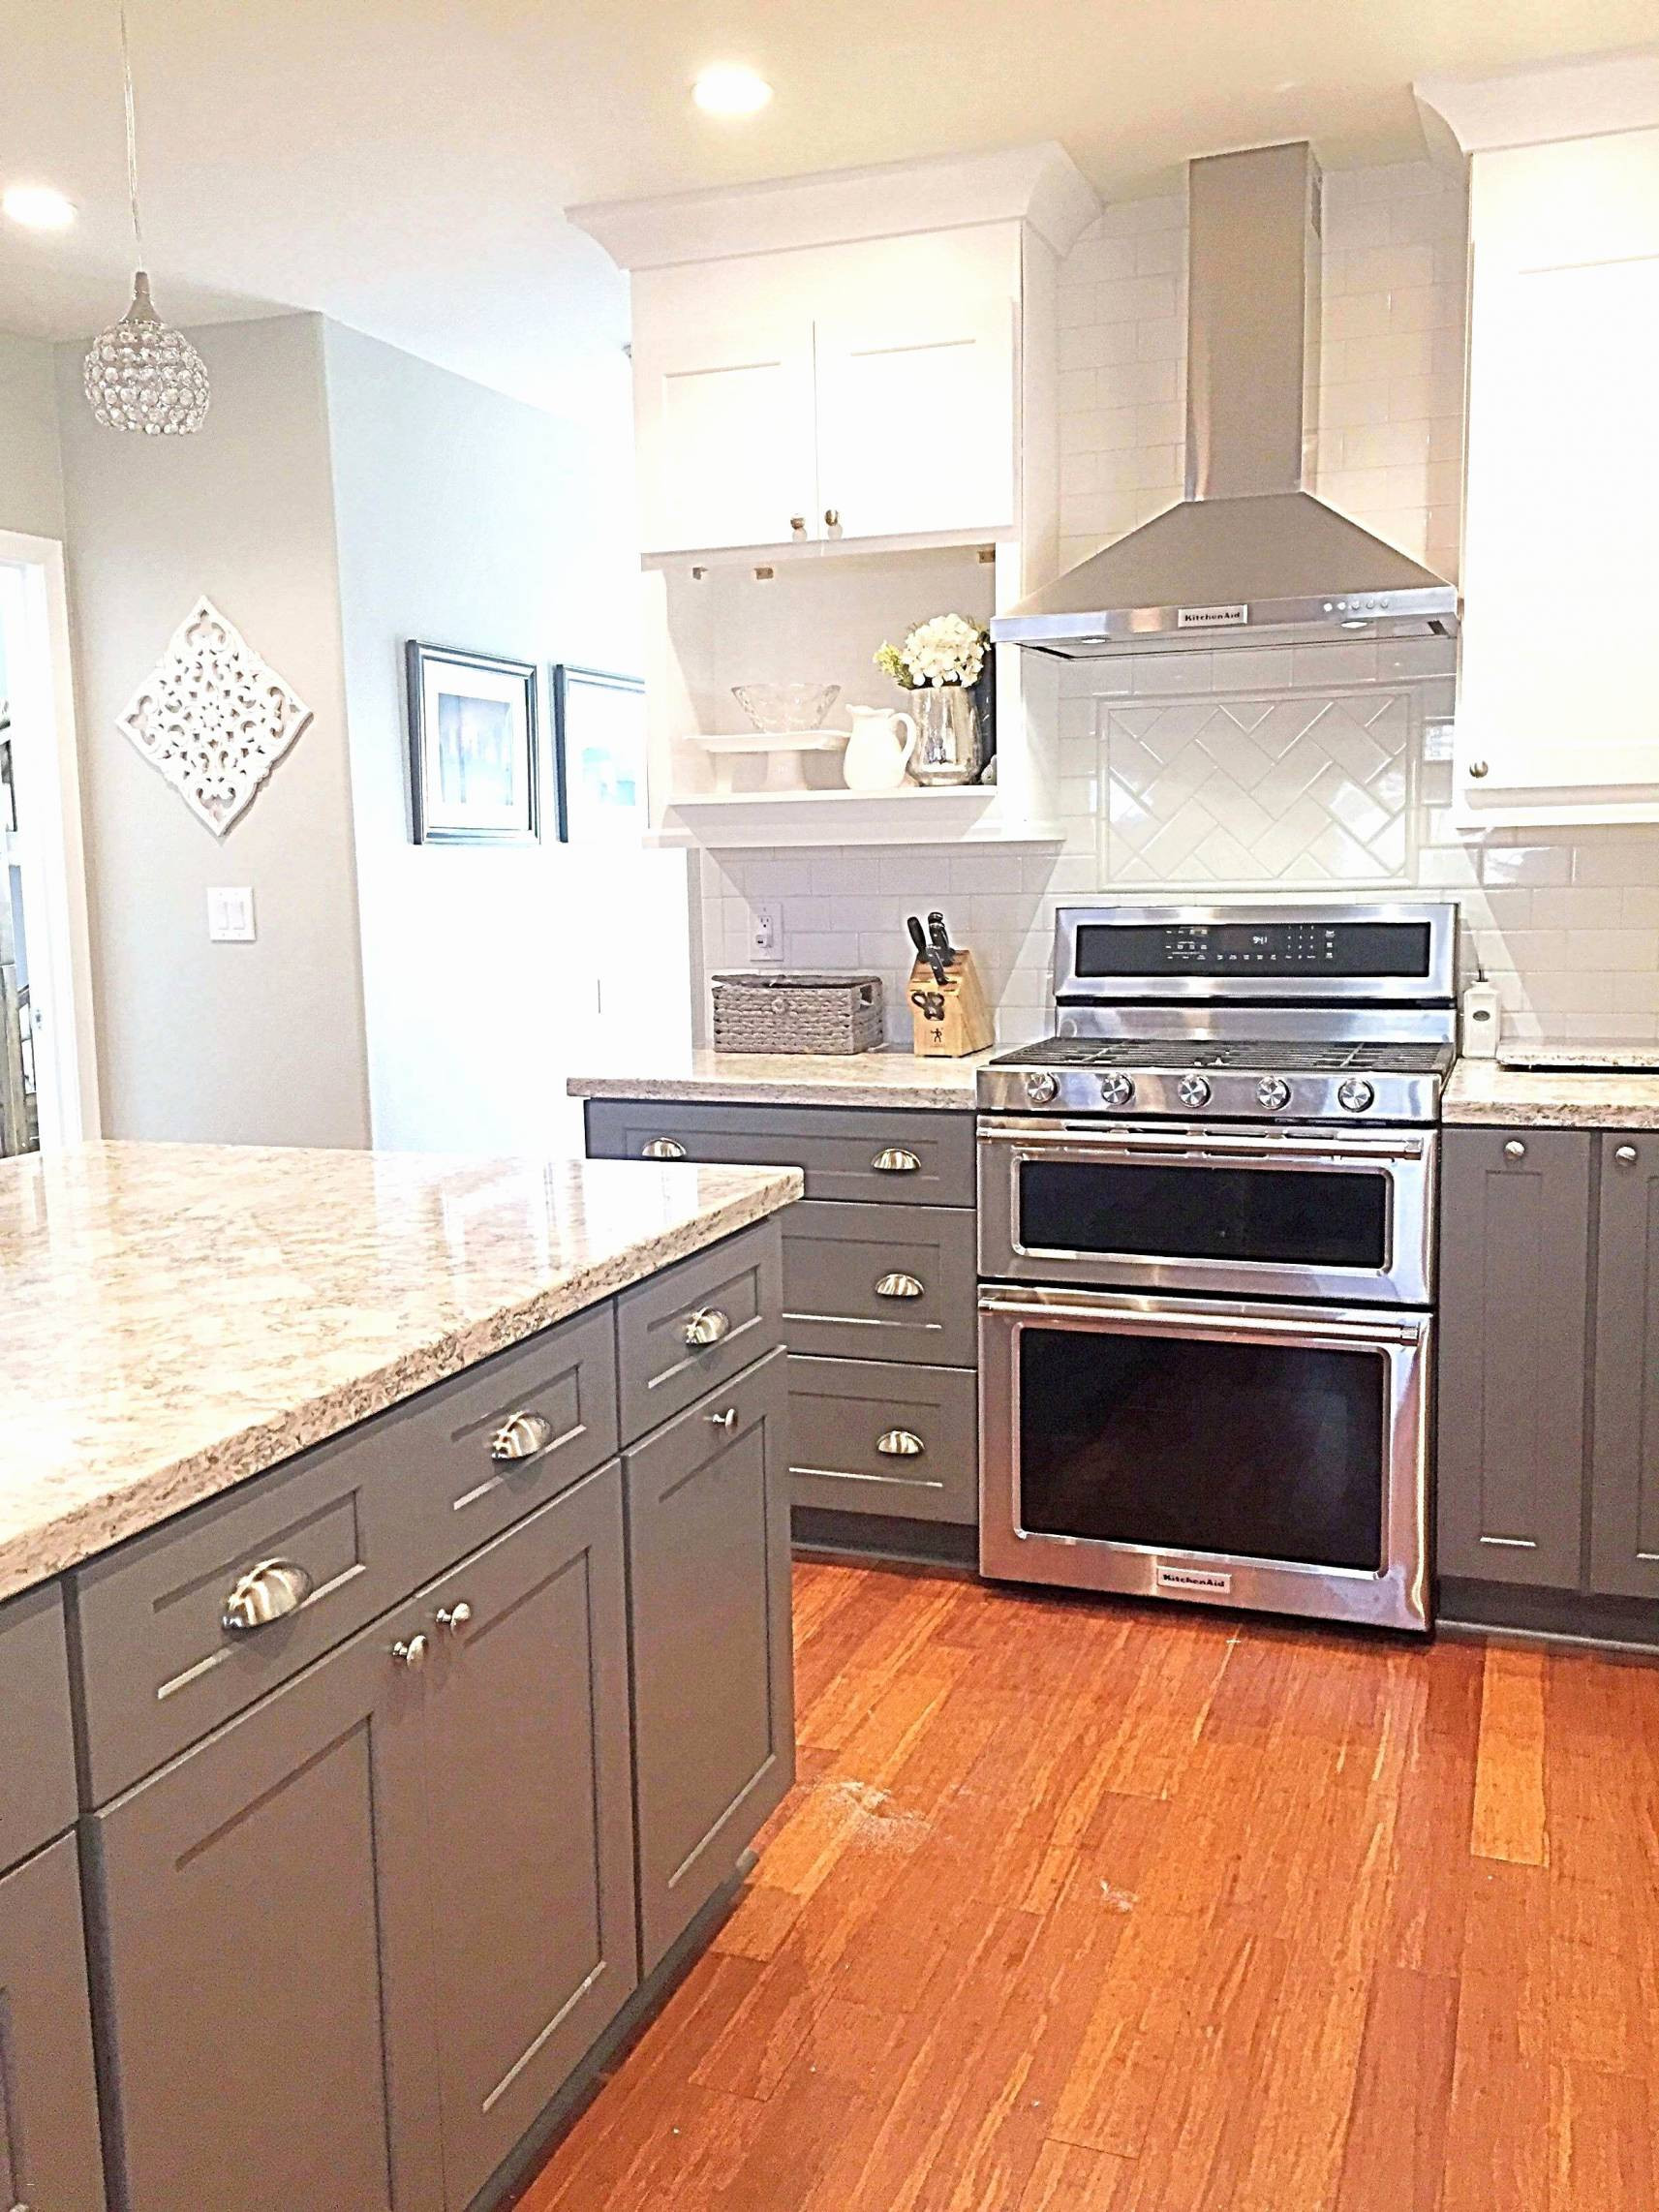 lowes solid hardwood flooring of for lowes kitchen cabinets photos www princesofkingsroad com page with for lowes kitchen cabinets photos 2018